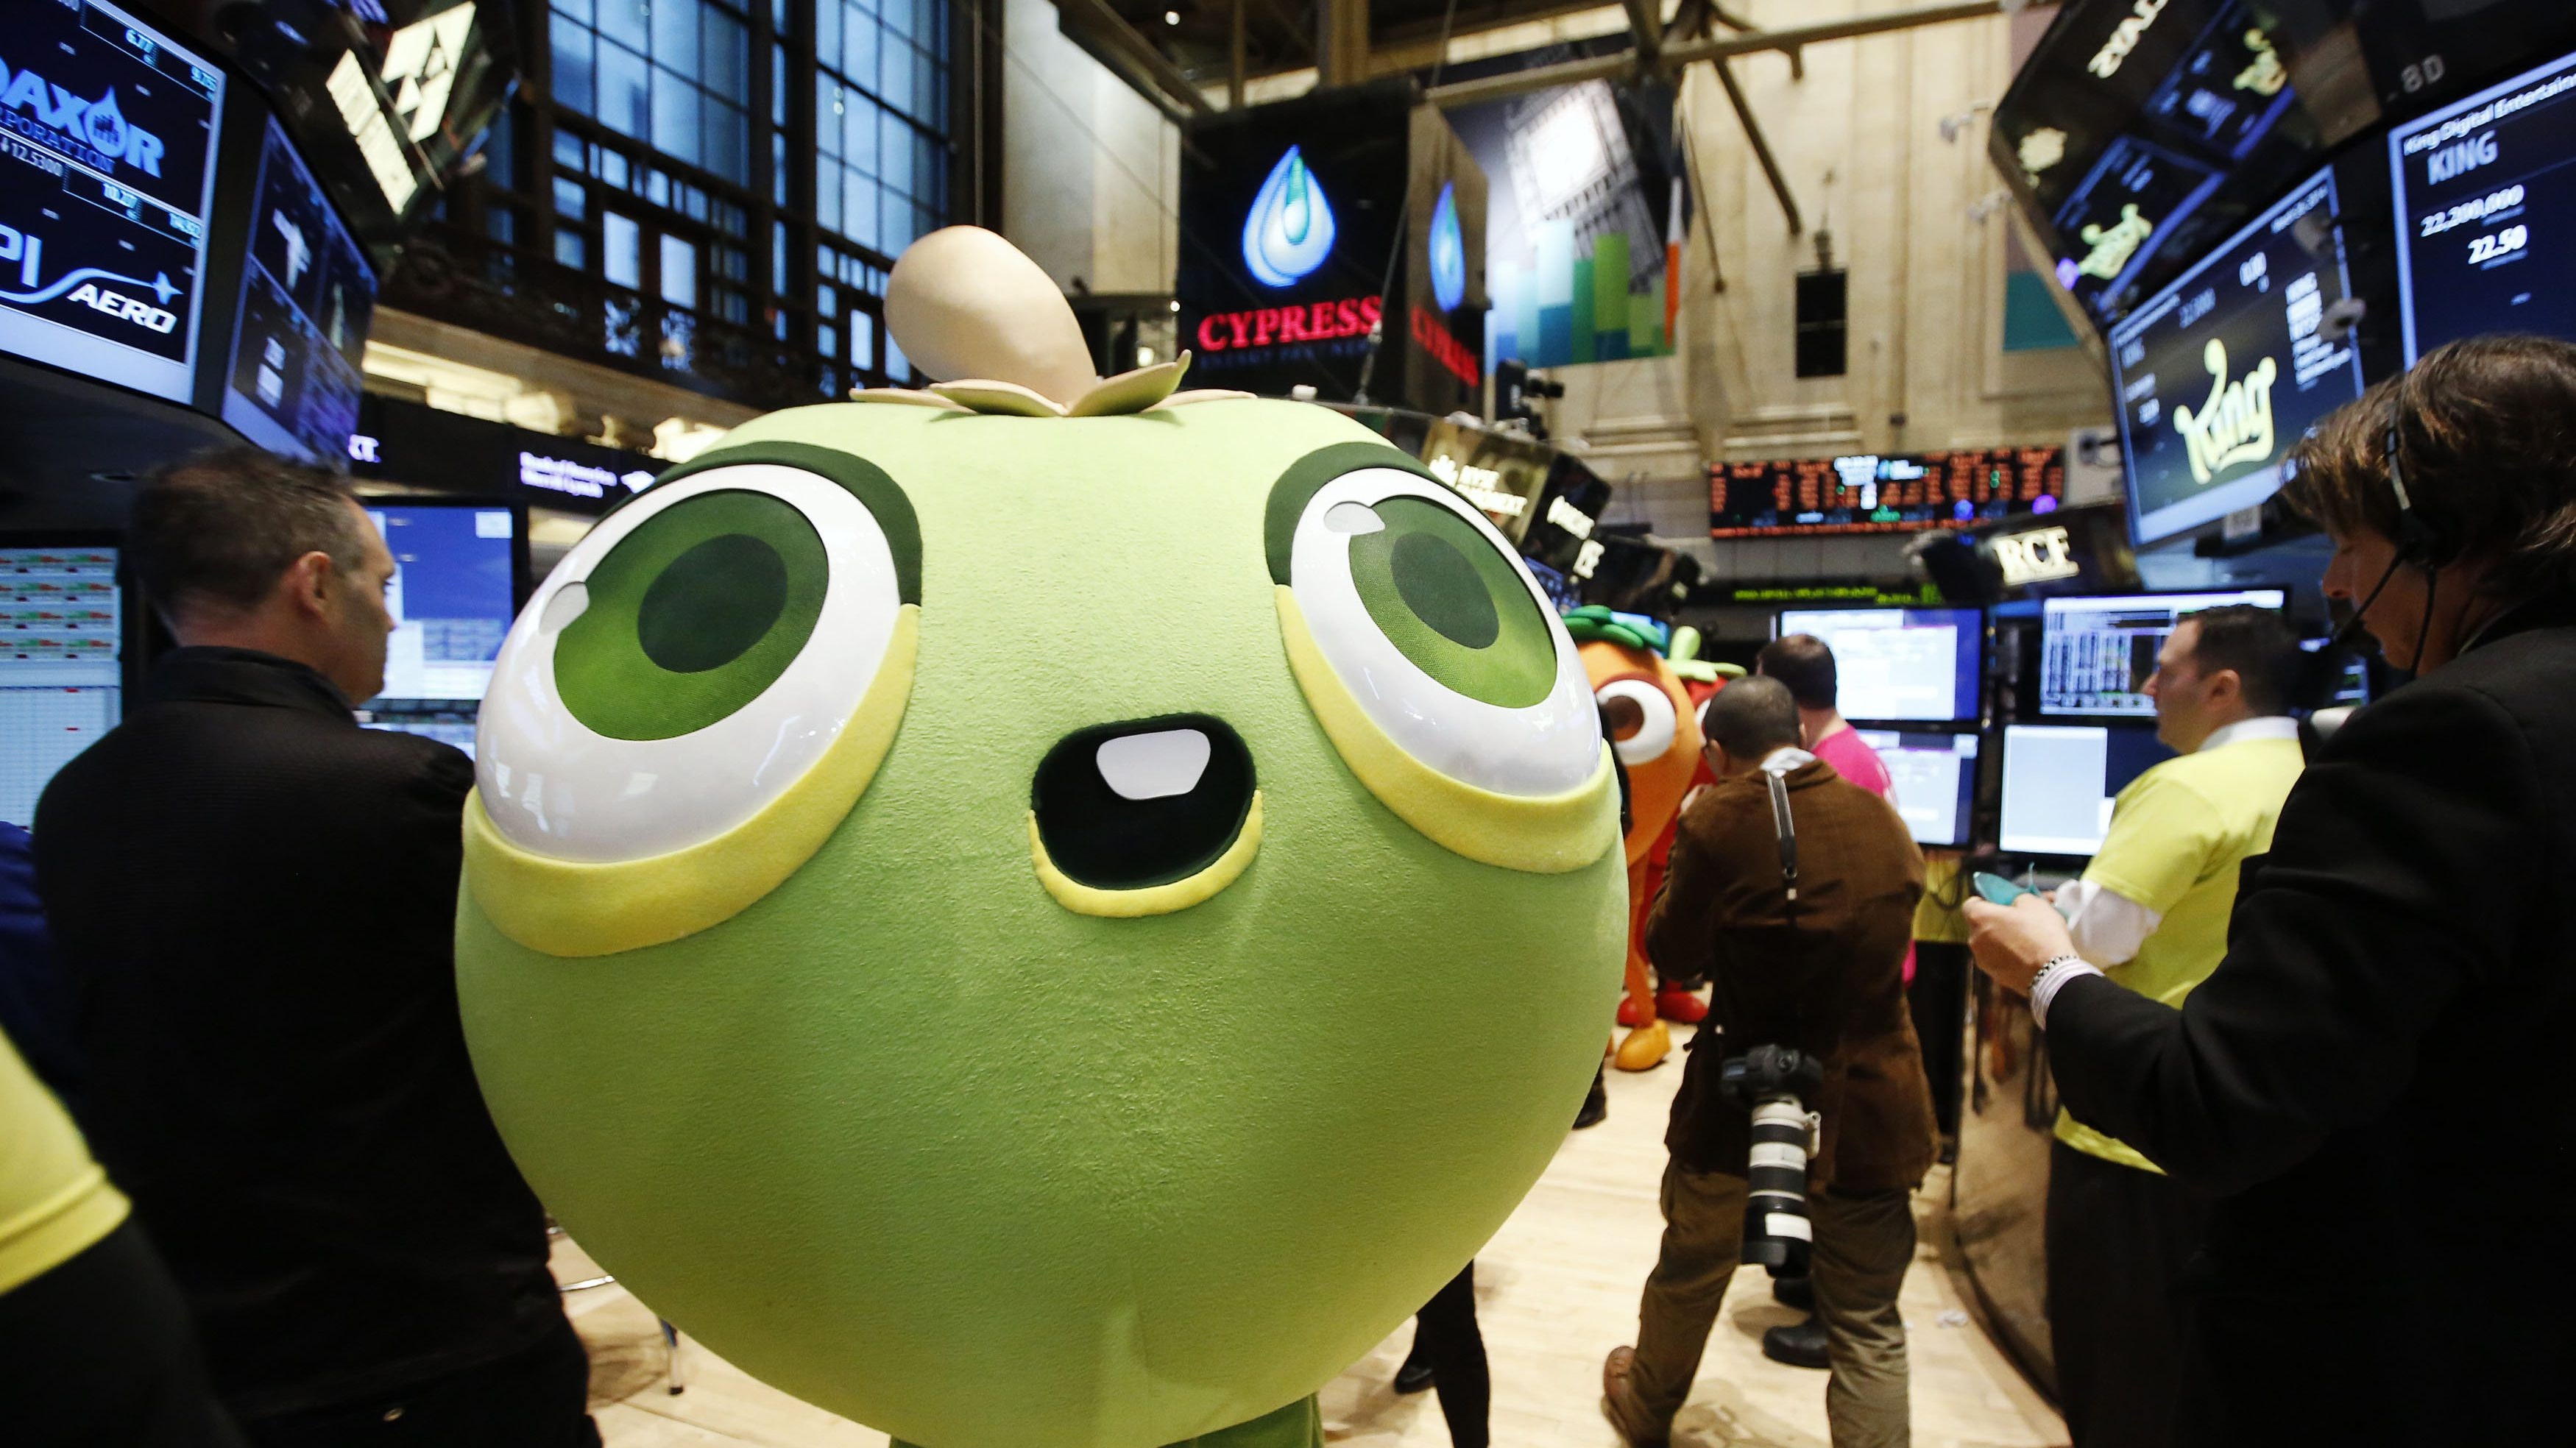 """A mascot dressed as a character from the mobile game """"Candy Crush Saga"""" walks the floor of the New York Stock Exchange during the IPO of Mobile game maker King Digital Entertainment Plc"""